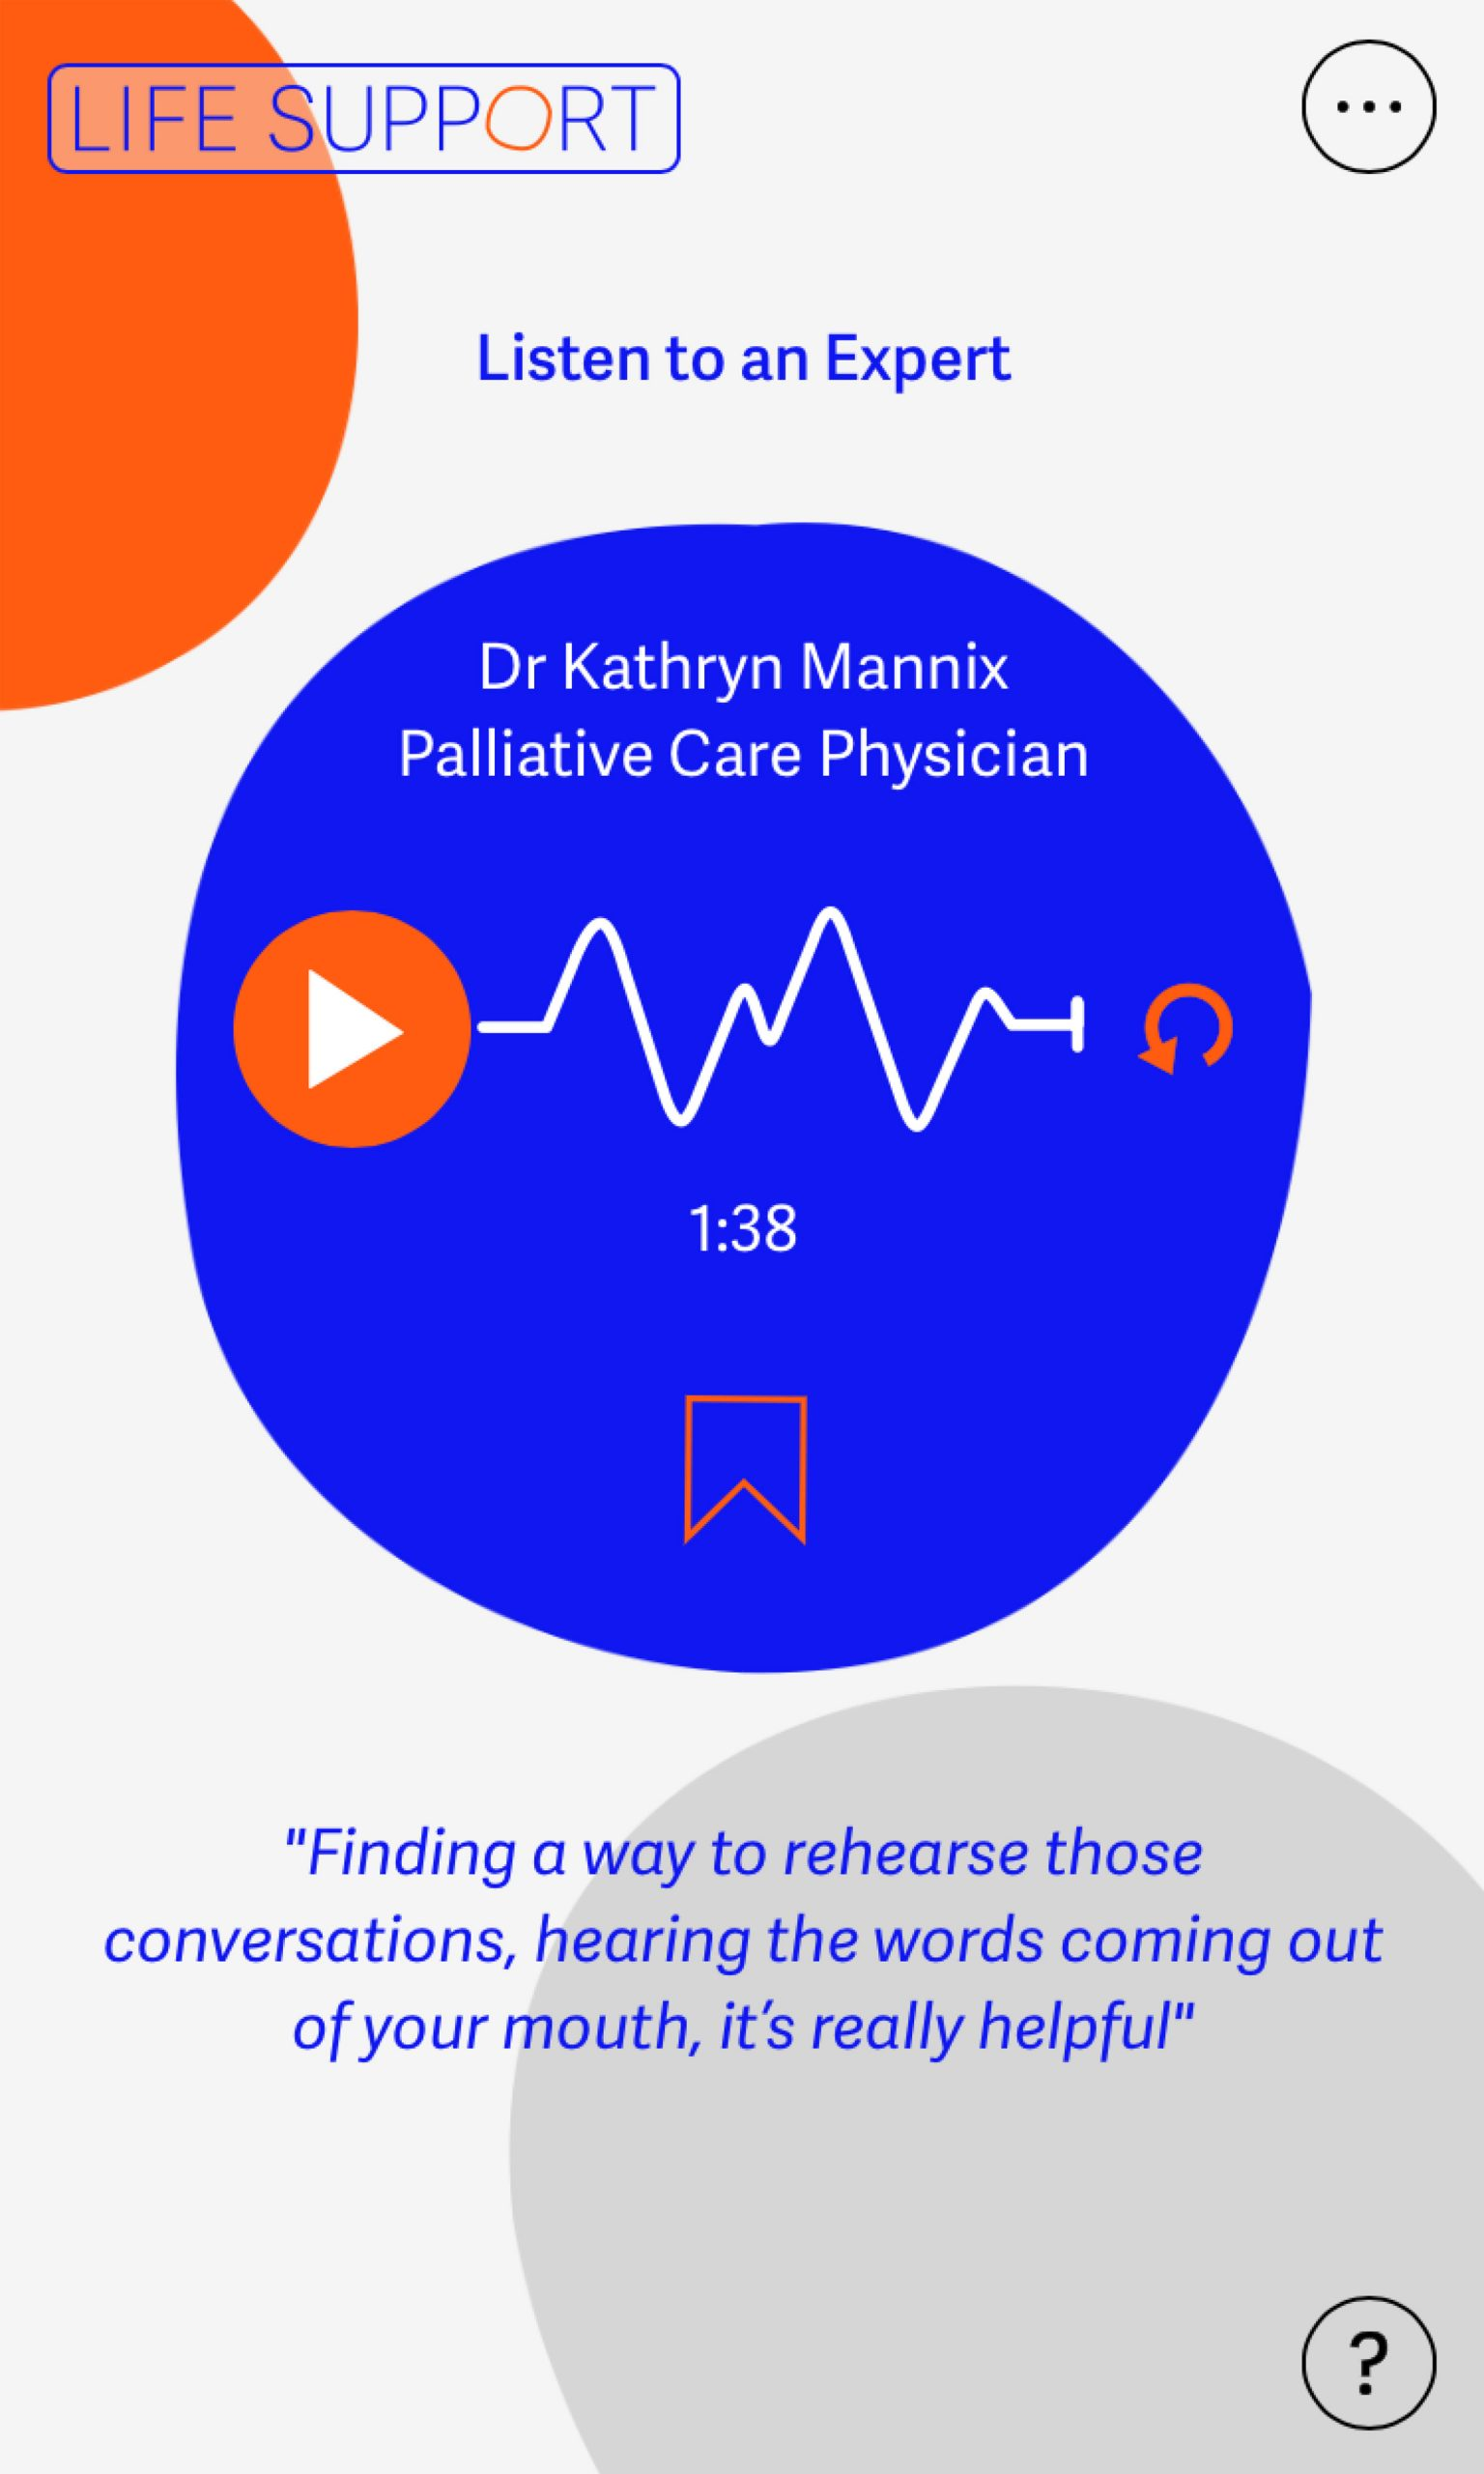 An audio clip from an expert in palliative care